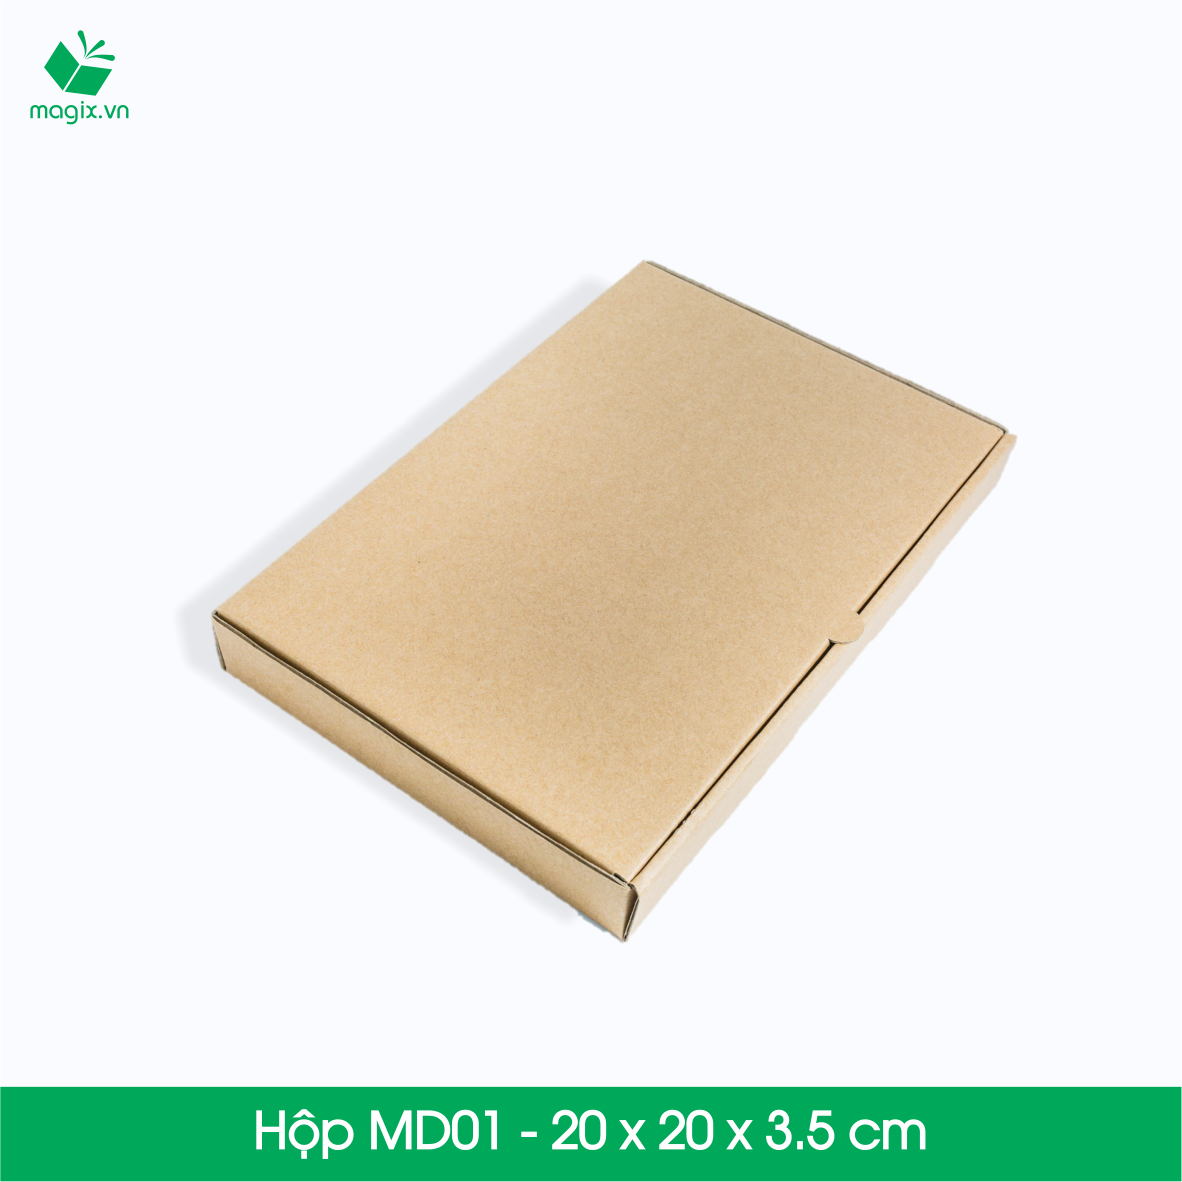 Hộp MD01 - 20 x 20 x 3.5 cm